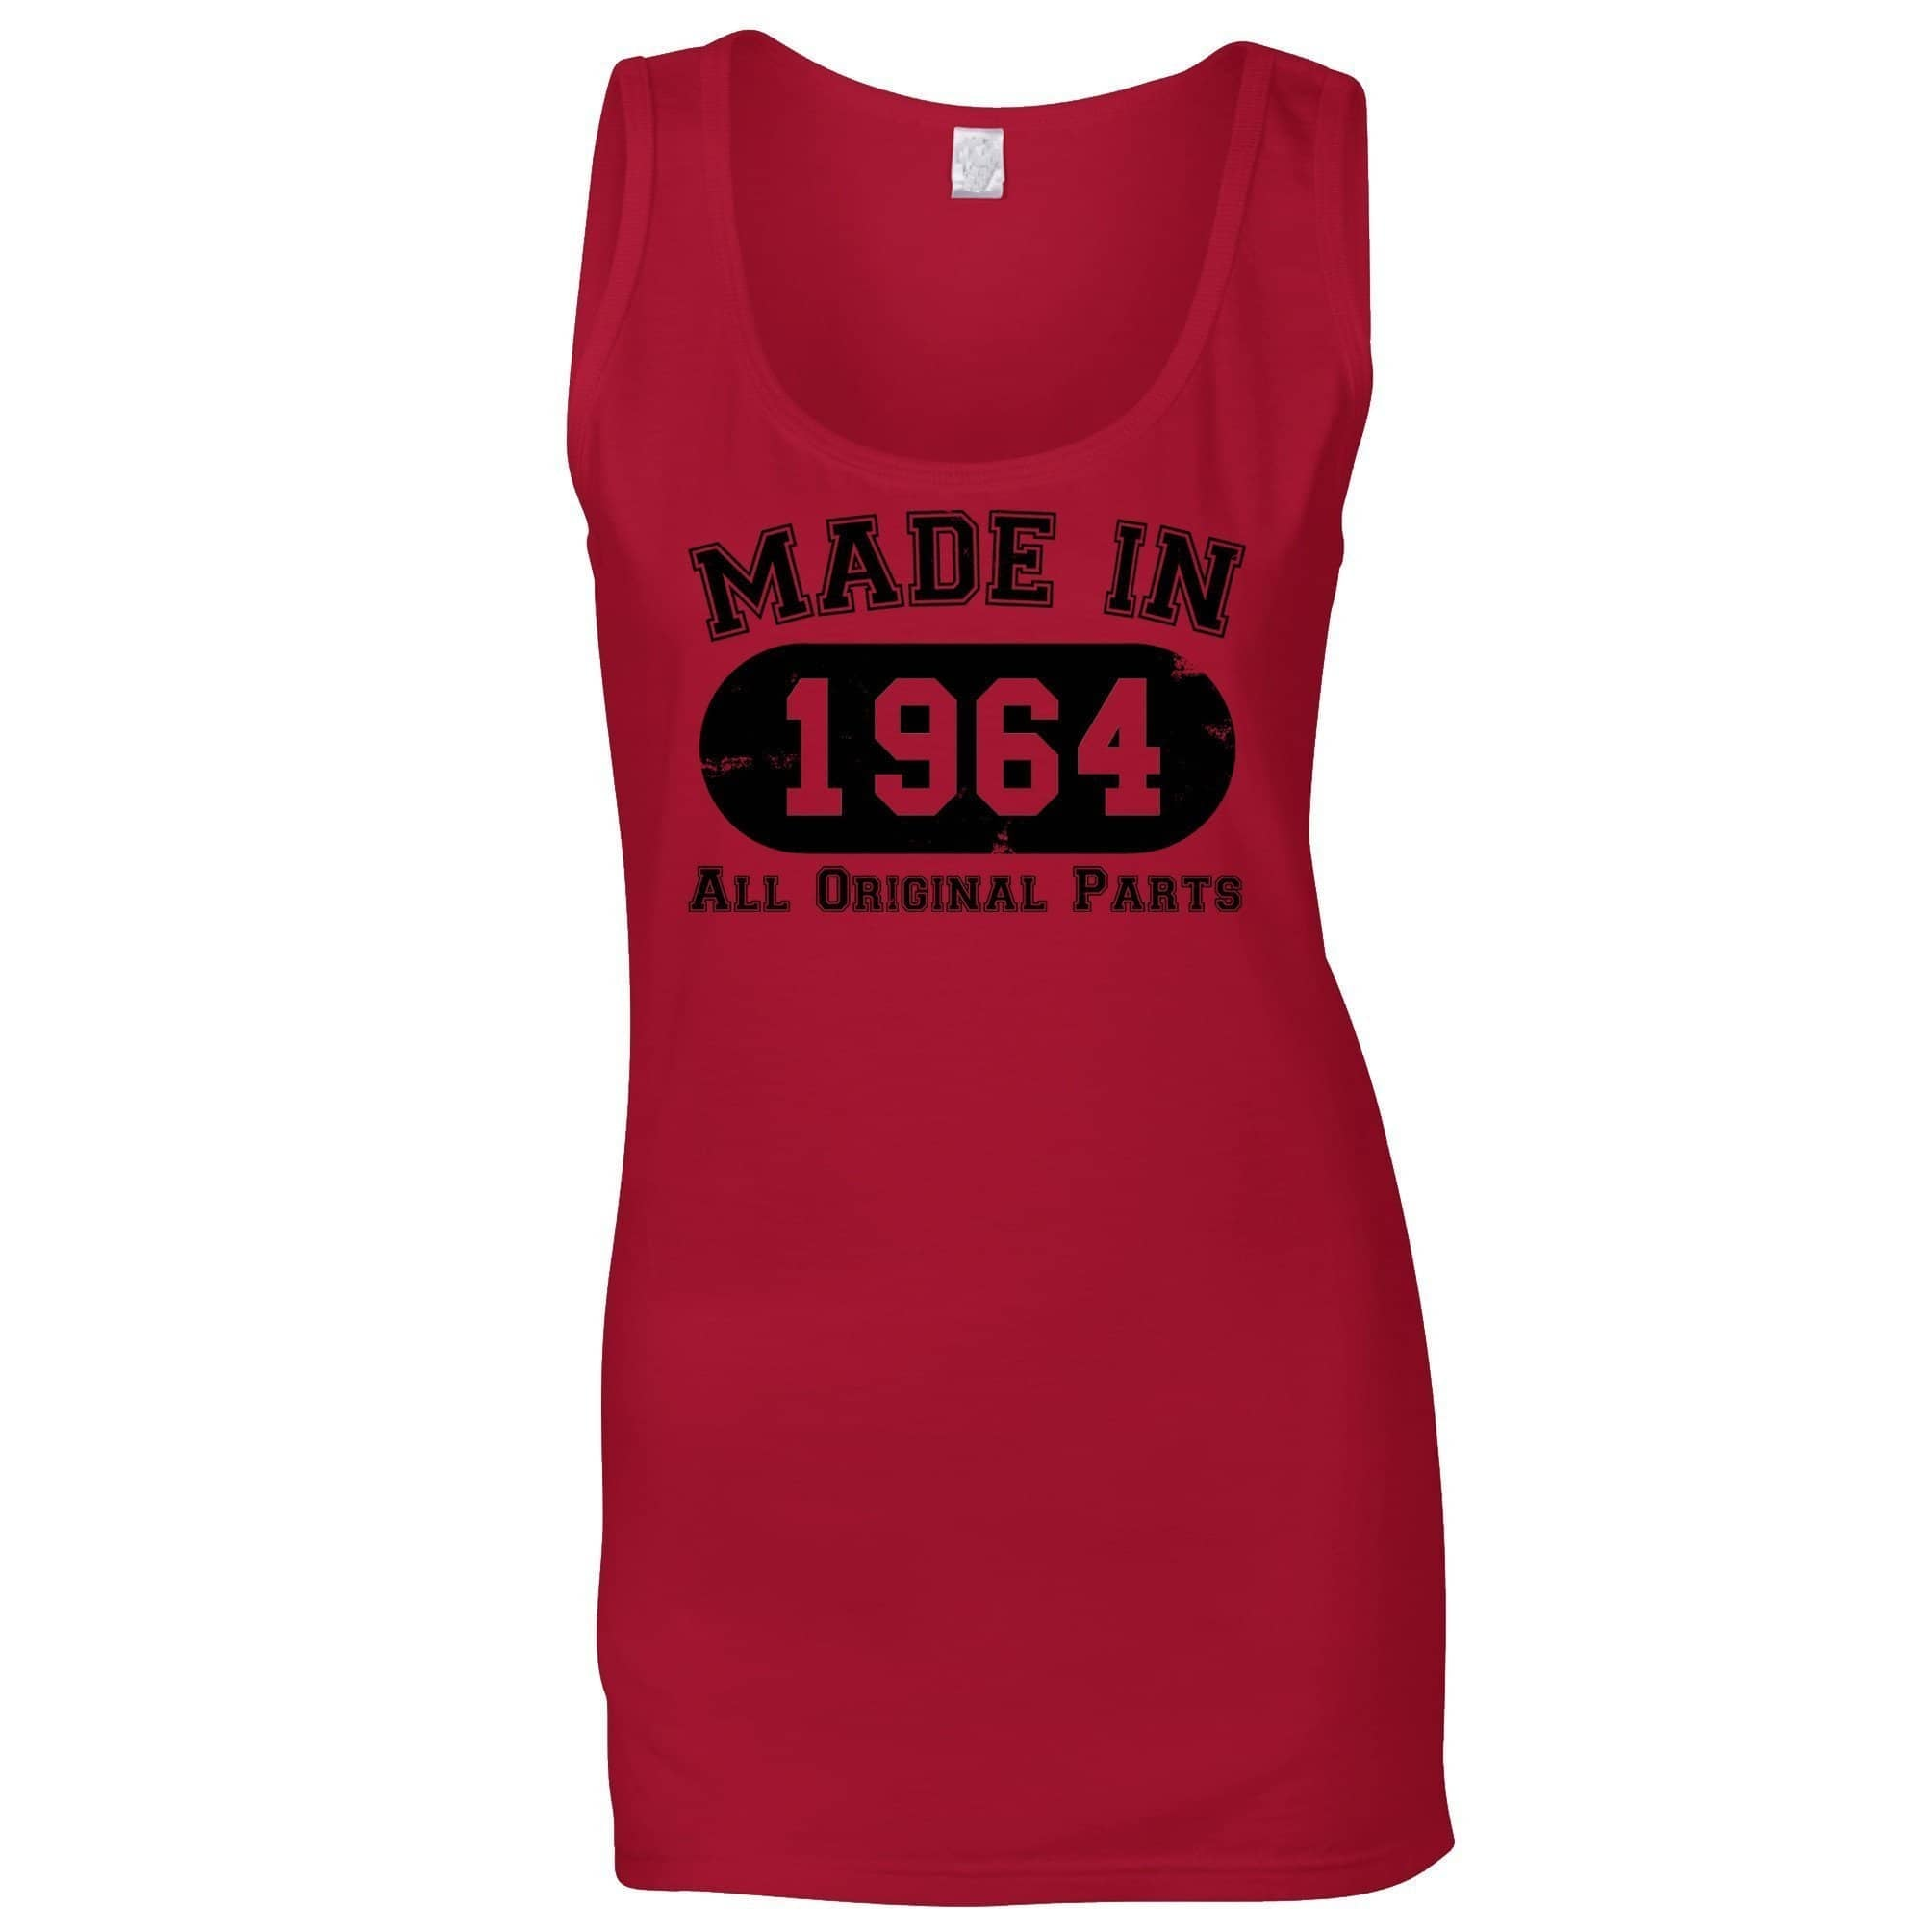 Made in 1964 All Original Parts Womens Vest [Distressed]